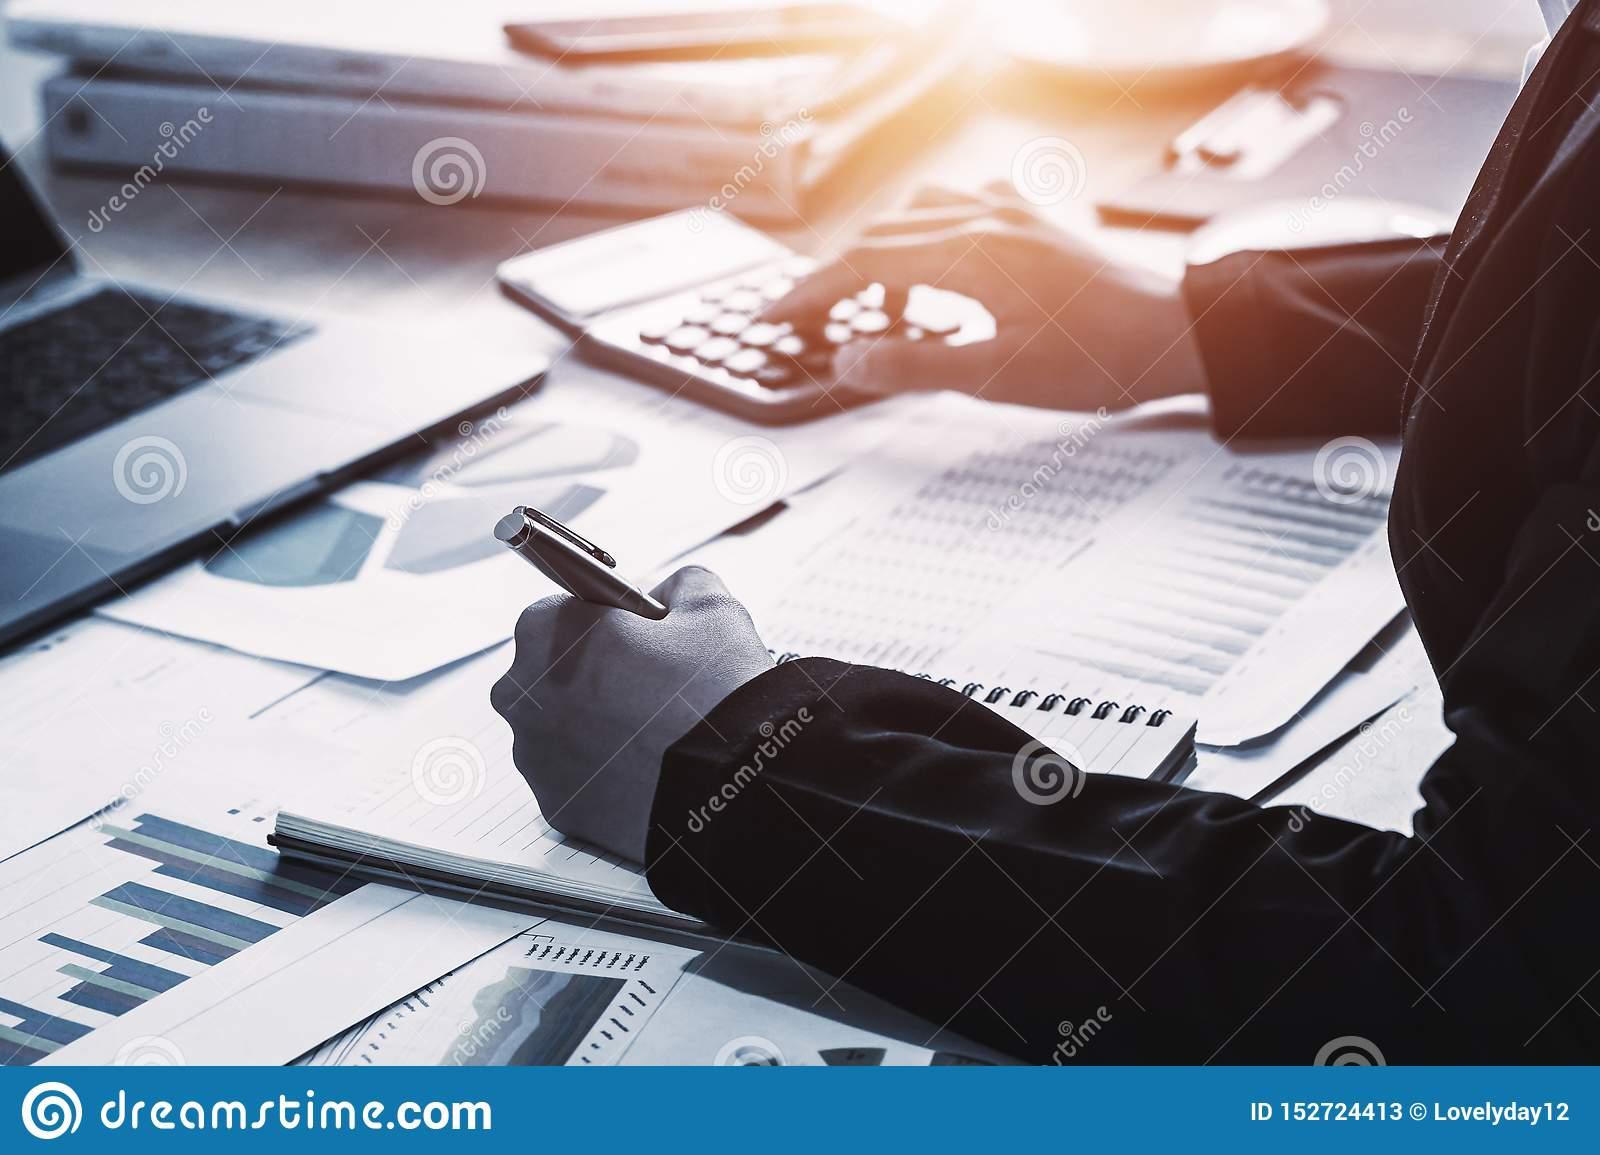 business accounting finance concept. accountant using calculator for calculate with laptop working in office